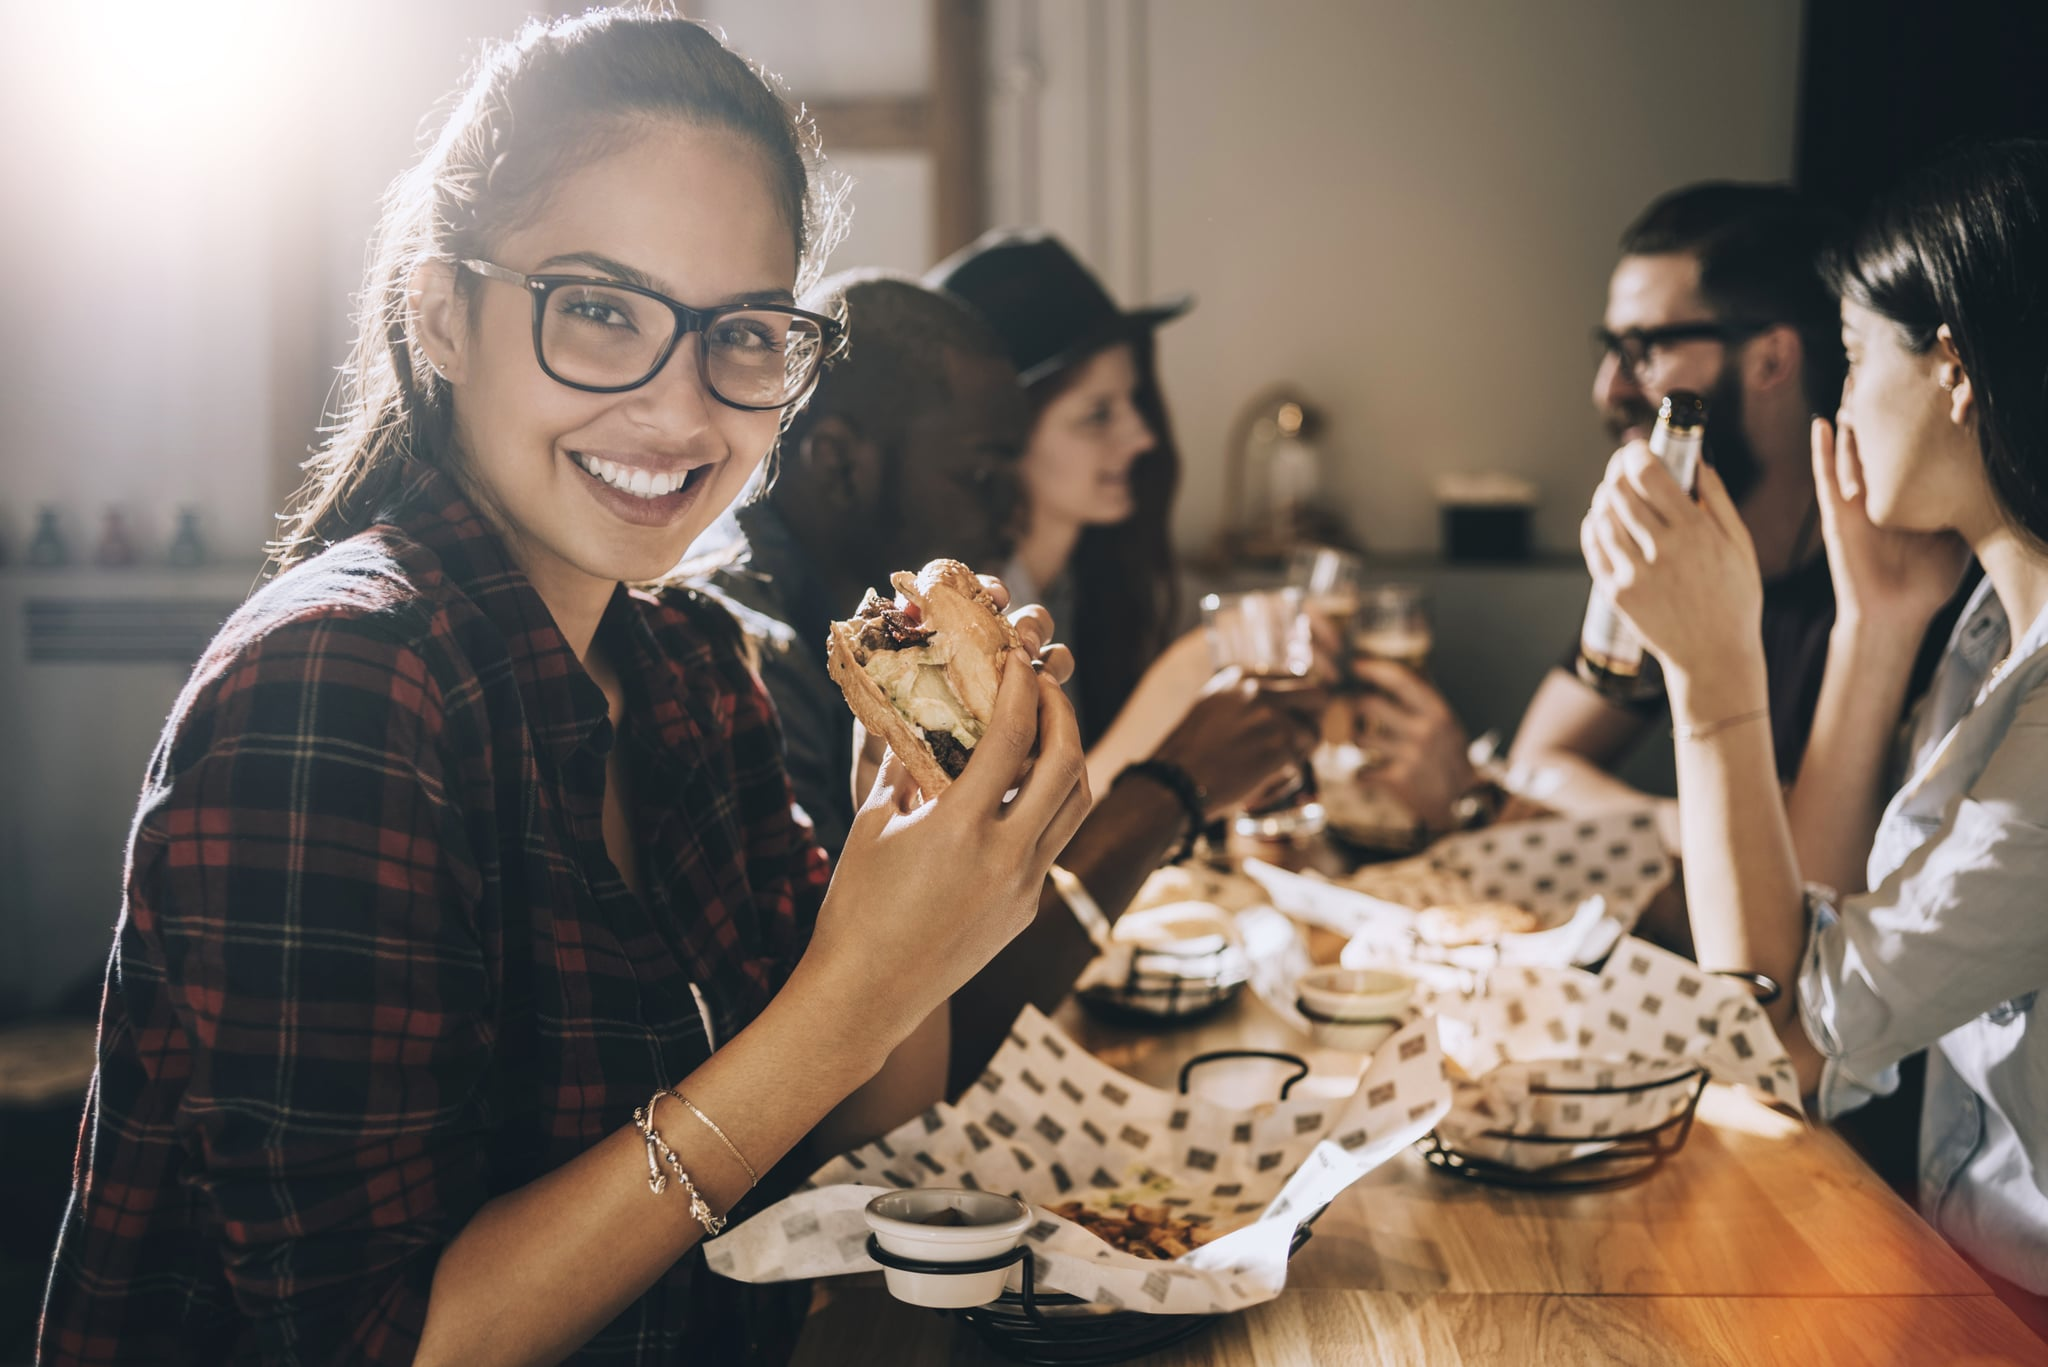 smiling beautiful woman eating a burger and having fun with her friends